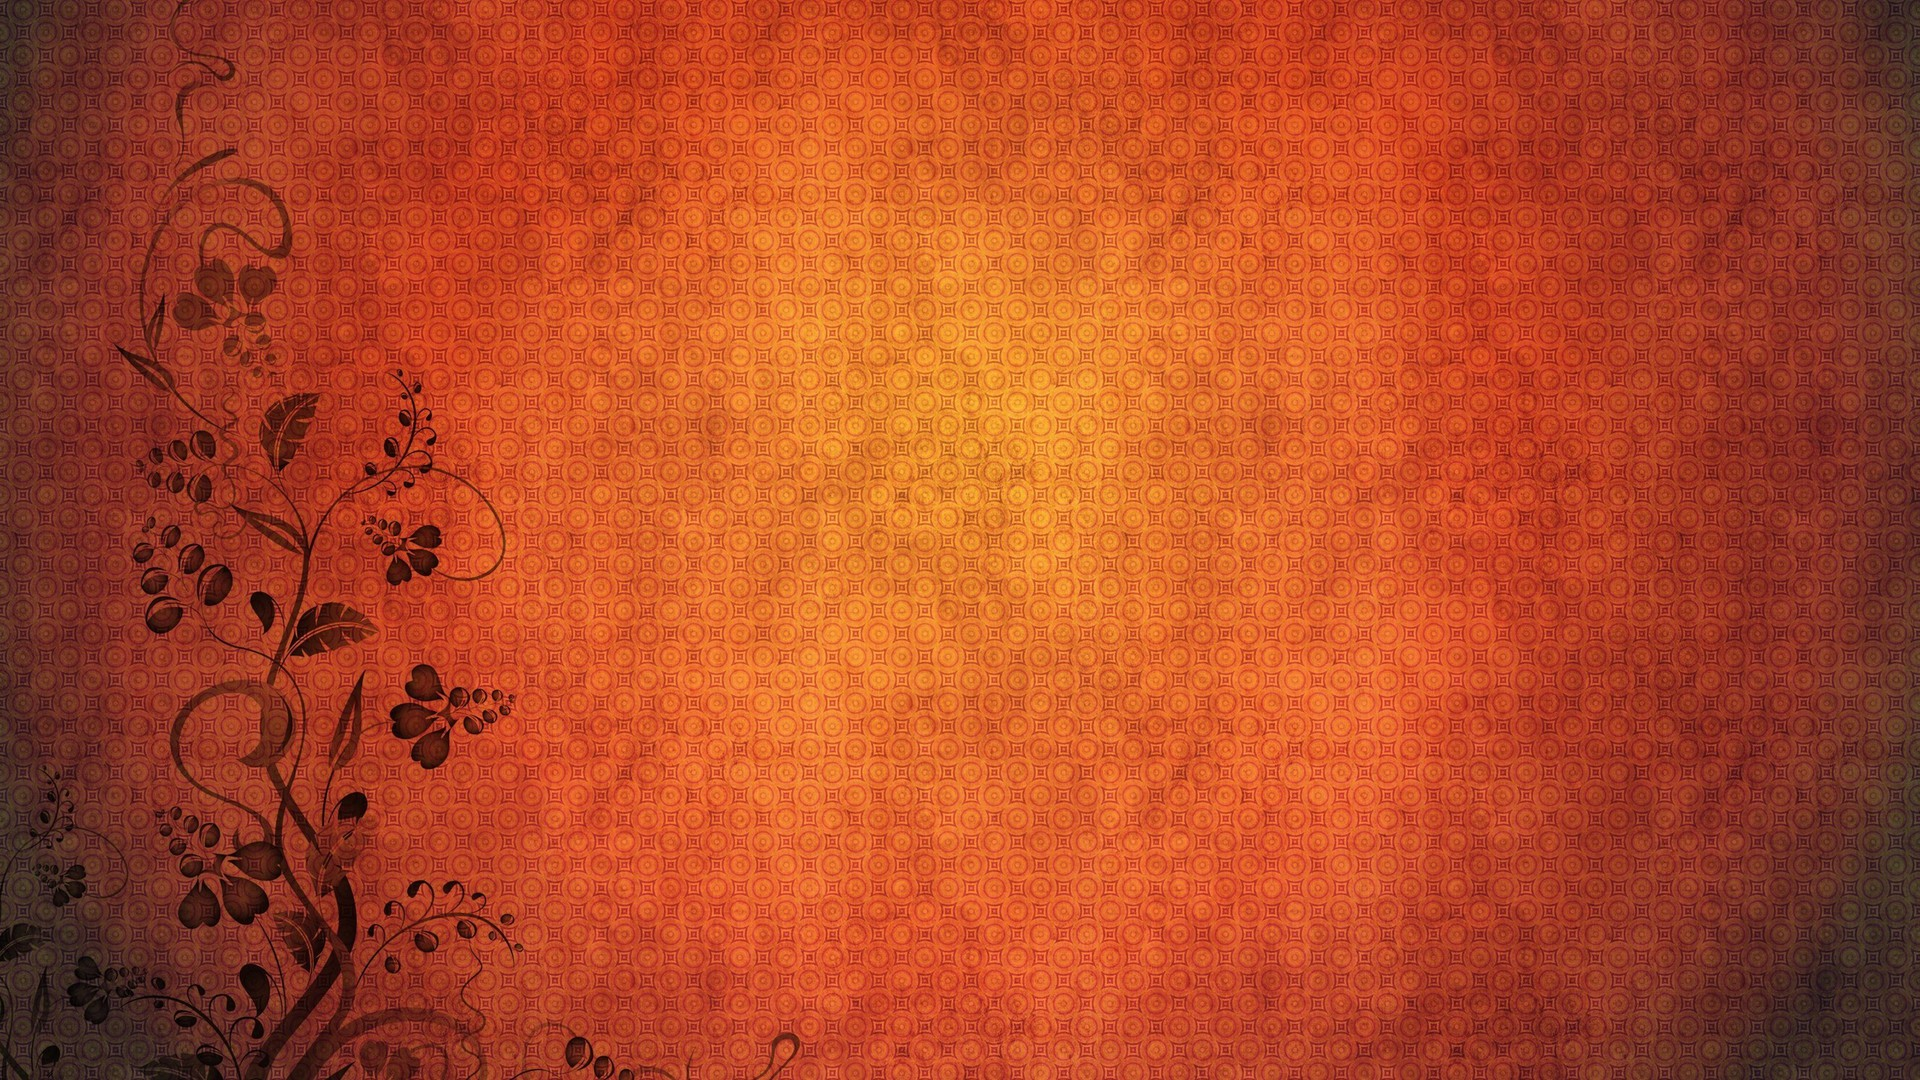 Minimalistic orange patterns simple background textures for Textures and backgrounds